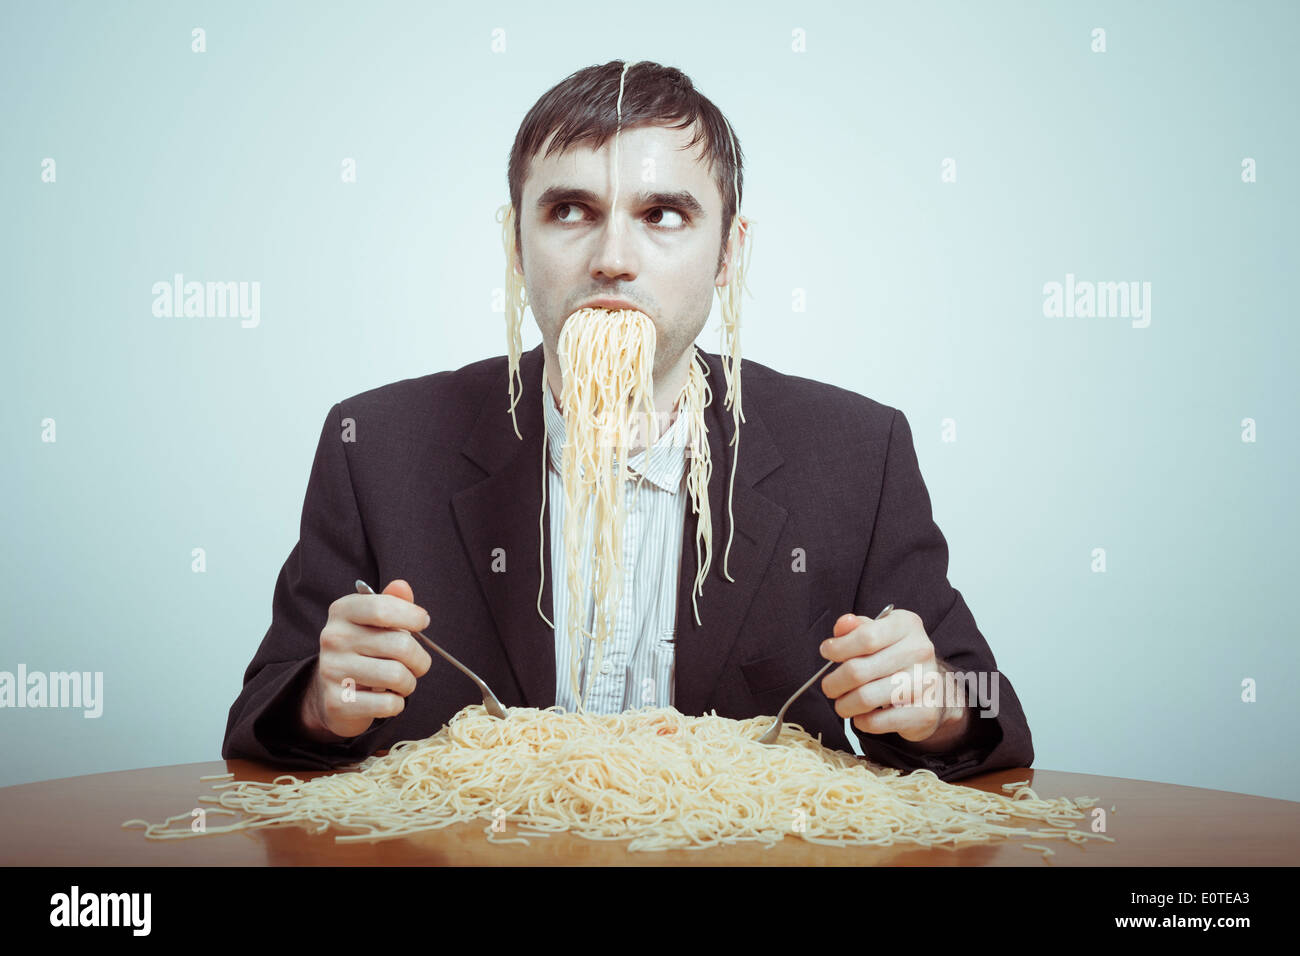 La suralimentation et le consumérisme concept. Silly nasty businessman eating pasta. Photo Stock